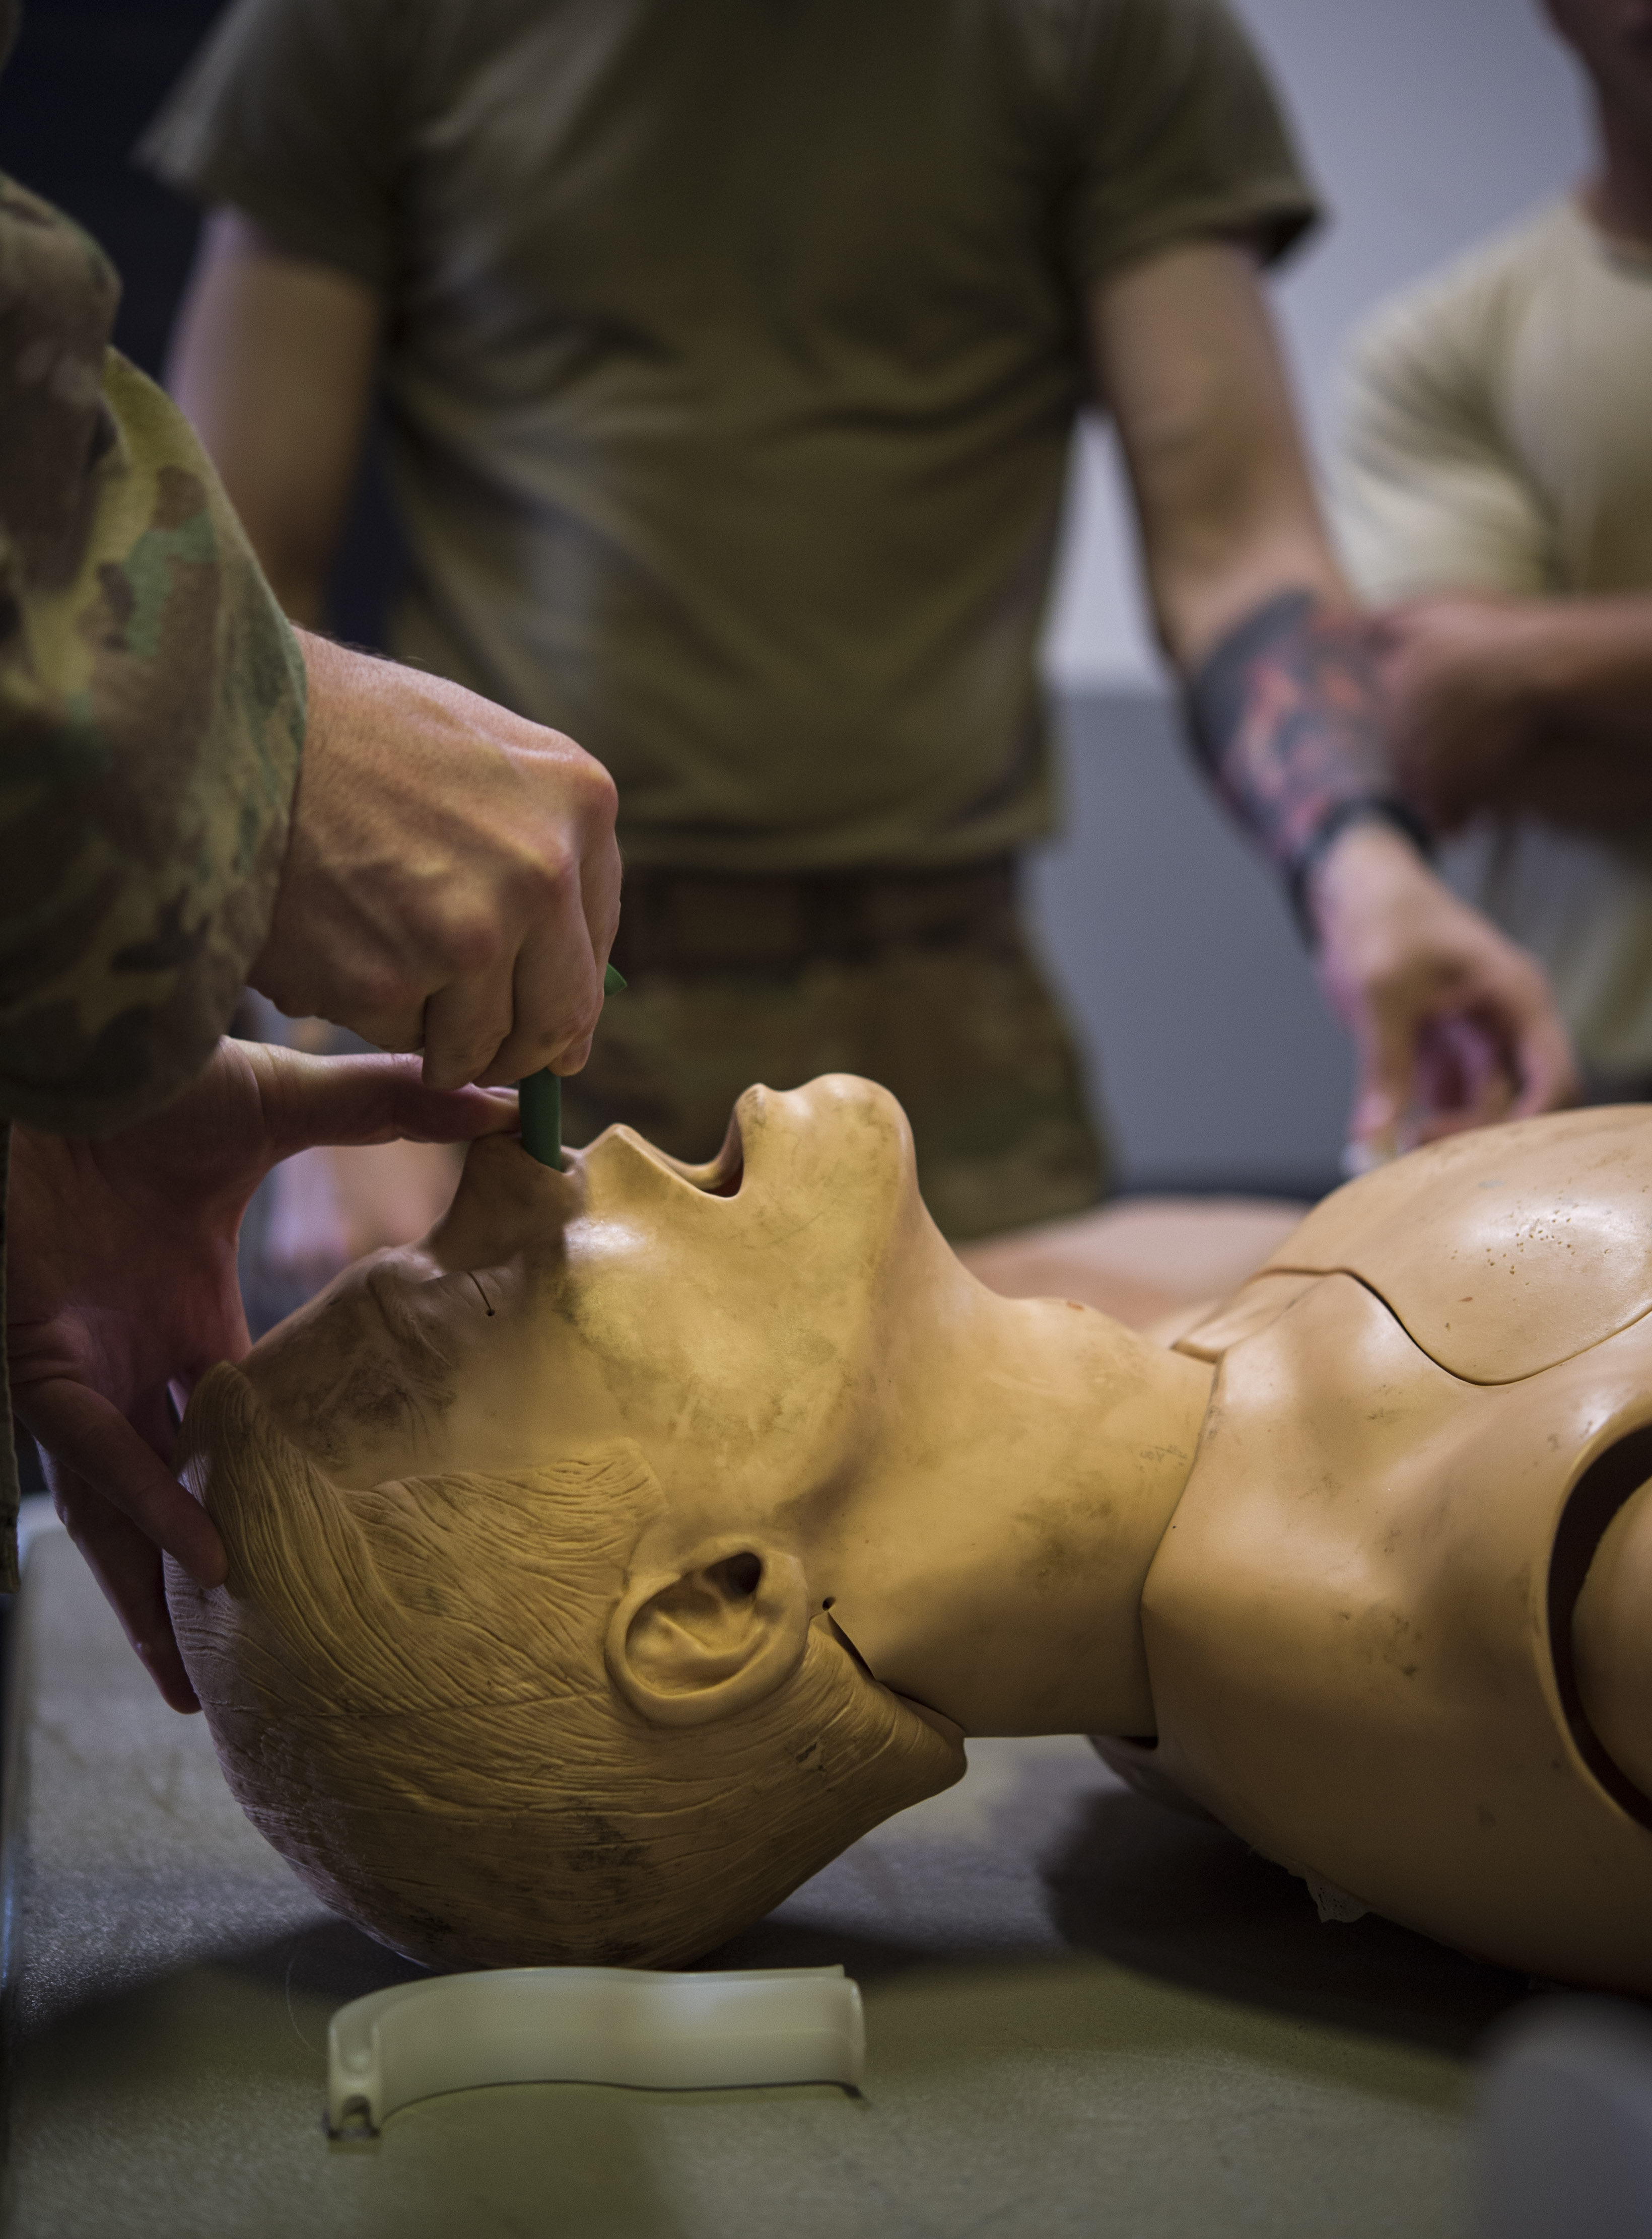 U.S. Army Cpl. Michael Pasichnyk, assigned to the 3rd Battalion, 144th Infantry Regiment Task Force Bayonet, attached to the Combined Joint Task Force – Horn of Africa, demonstrates how to insert a nasopharyngeal airway during a U.S. Army Combat Lifesaver Course held at Camp Lemonnier, Djibouti, Nov. 29, 2017. The five-day course focused on teaching students how to administer lifesaving tactical medical care to wounded service members on the battlefield. (U.S. Air Force photo by Staff Sgt. Timothy Moore)